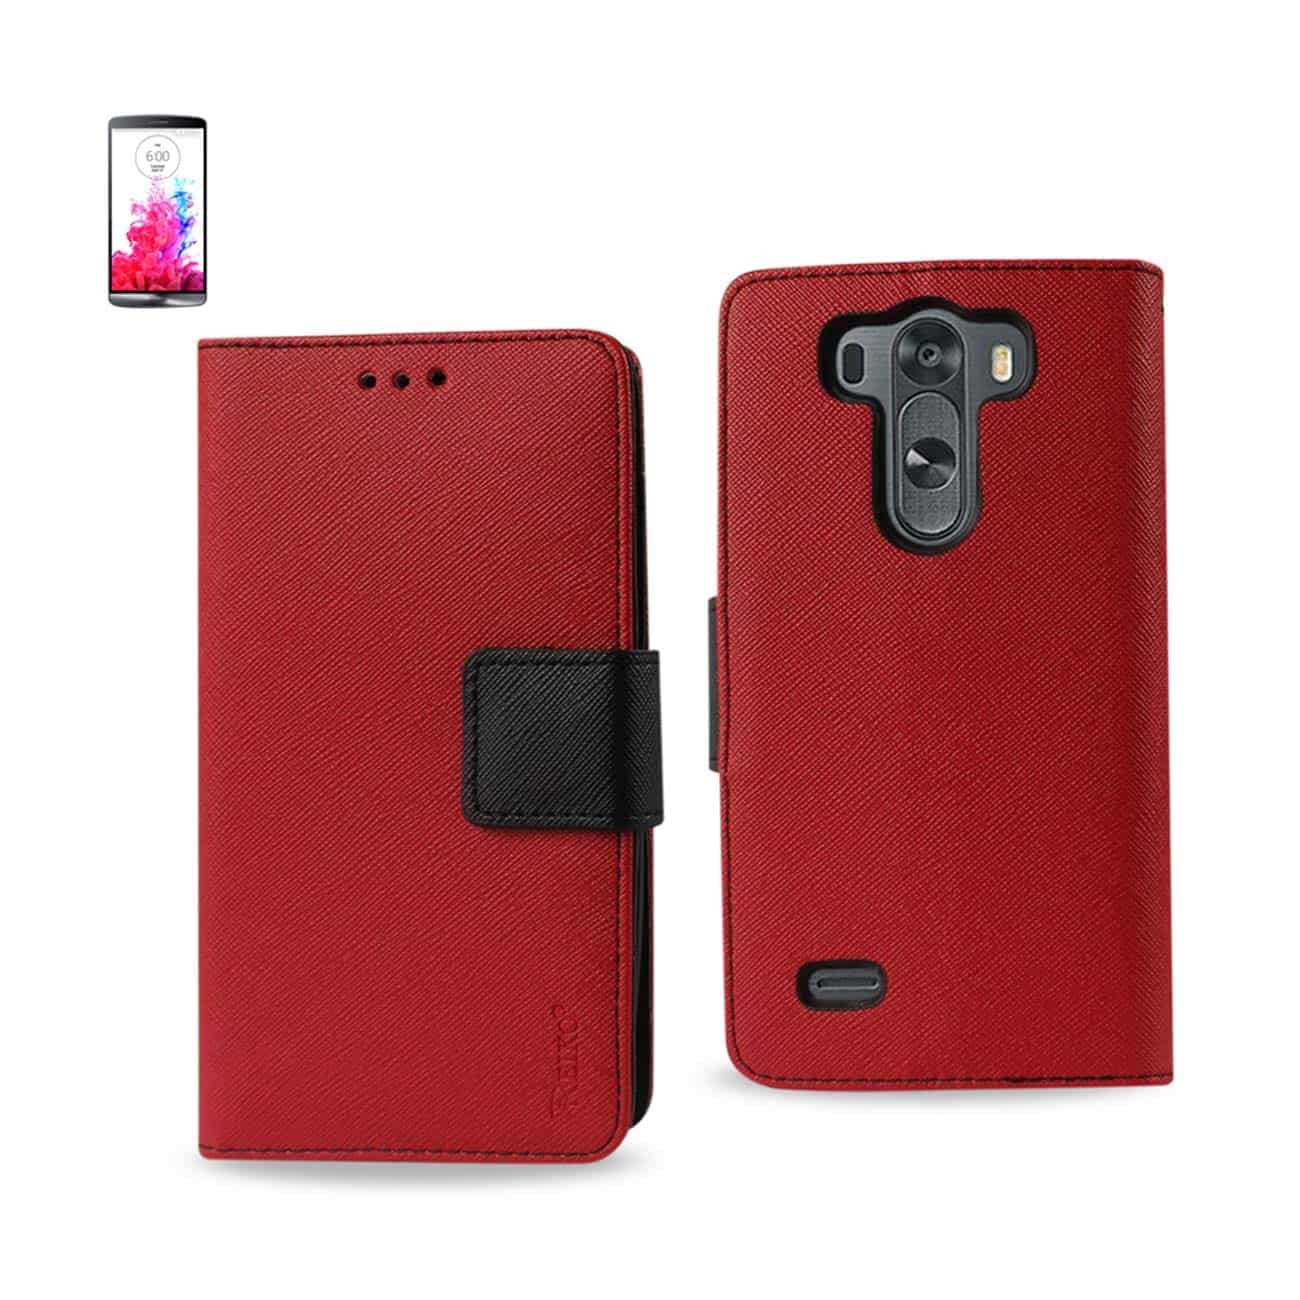 LG G3 MINI 3-IN-1 WALLET CASE IN RED